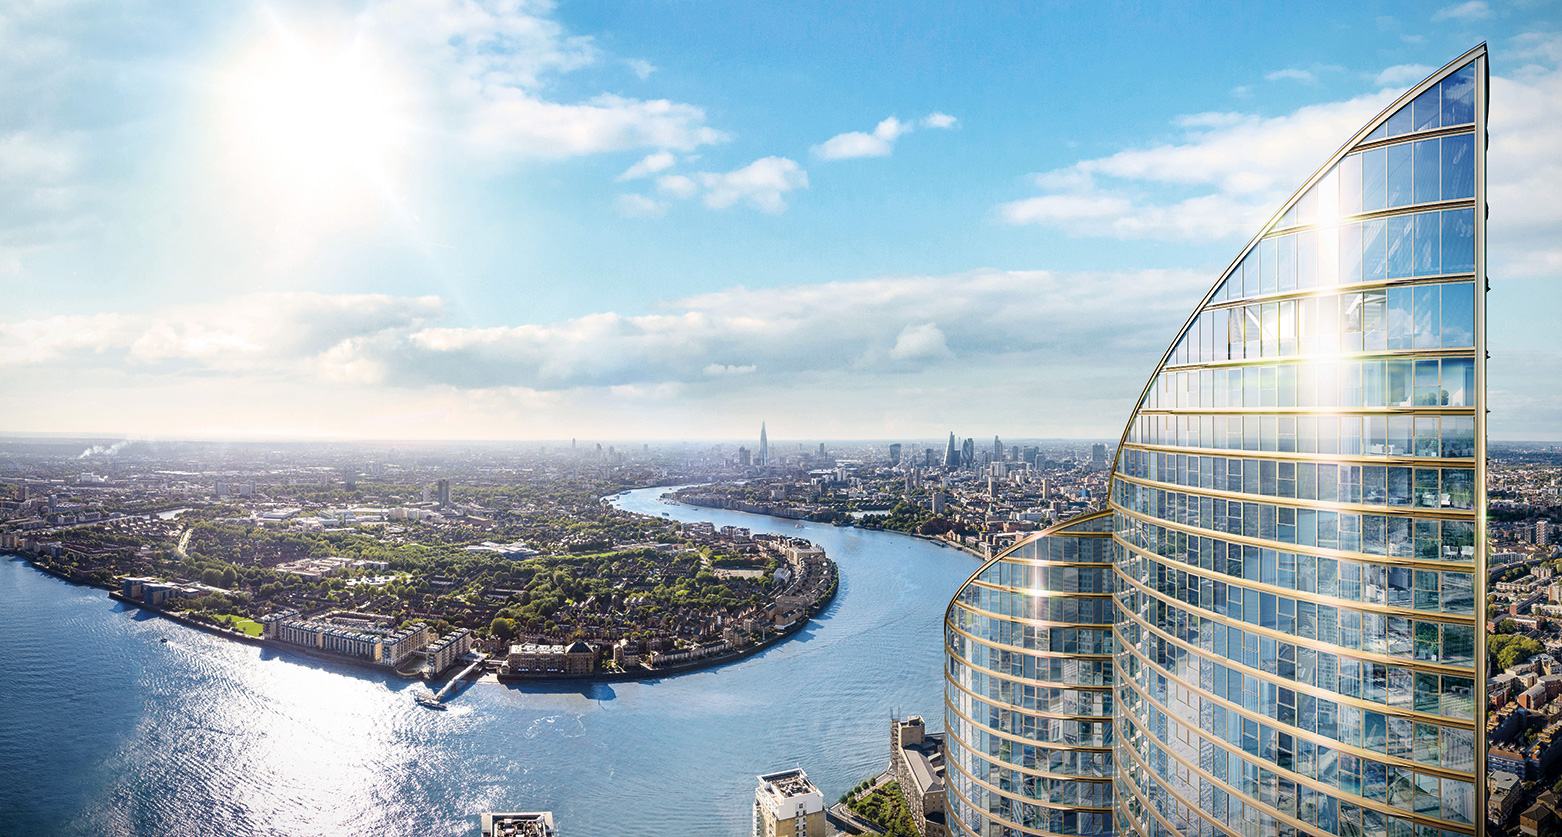 Western Europe's tallest skyscraper to be built in London